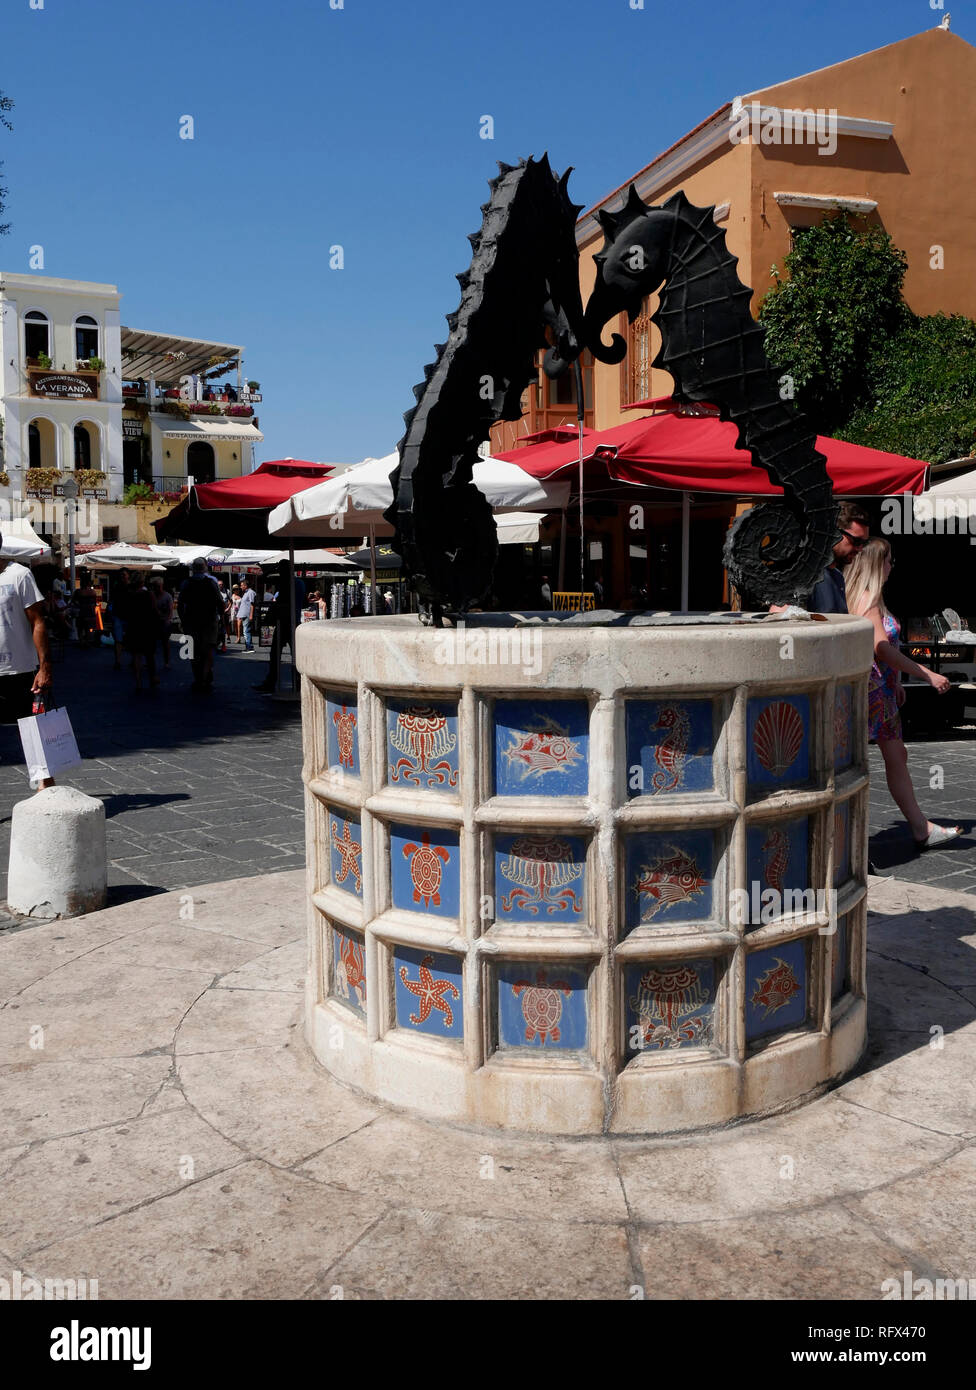 The former Jewish Quarter in Rhodes with the memorial to the Nazi holocaust Victims and the Seahorse Fountain near the Kahal Shalom Synagogue - Stock Image